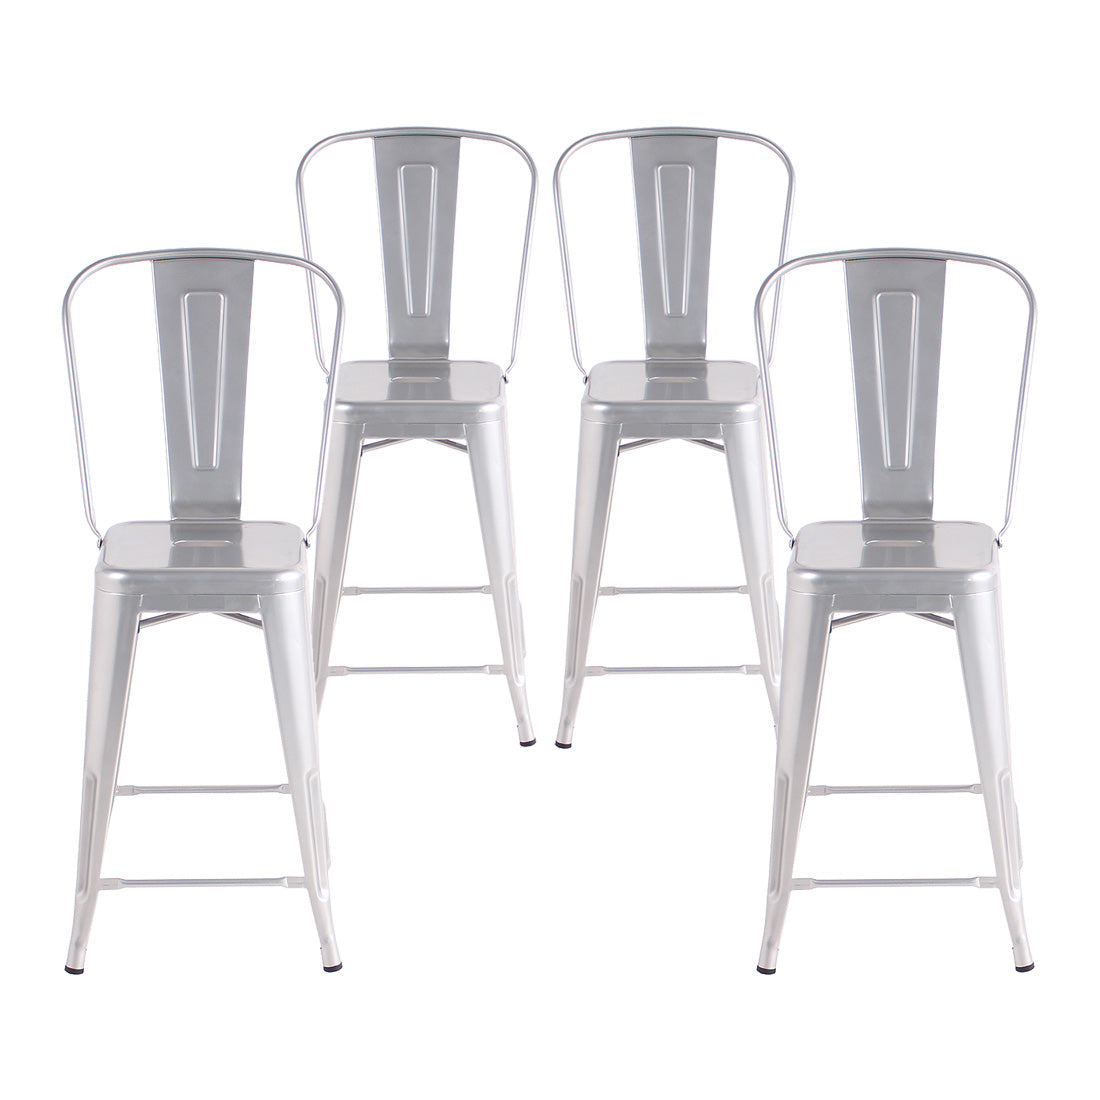 Buschman Set of 4 Grey 24 Inch Counter Height Metal Bar Stools with High Back, Indoor/Outdoor